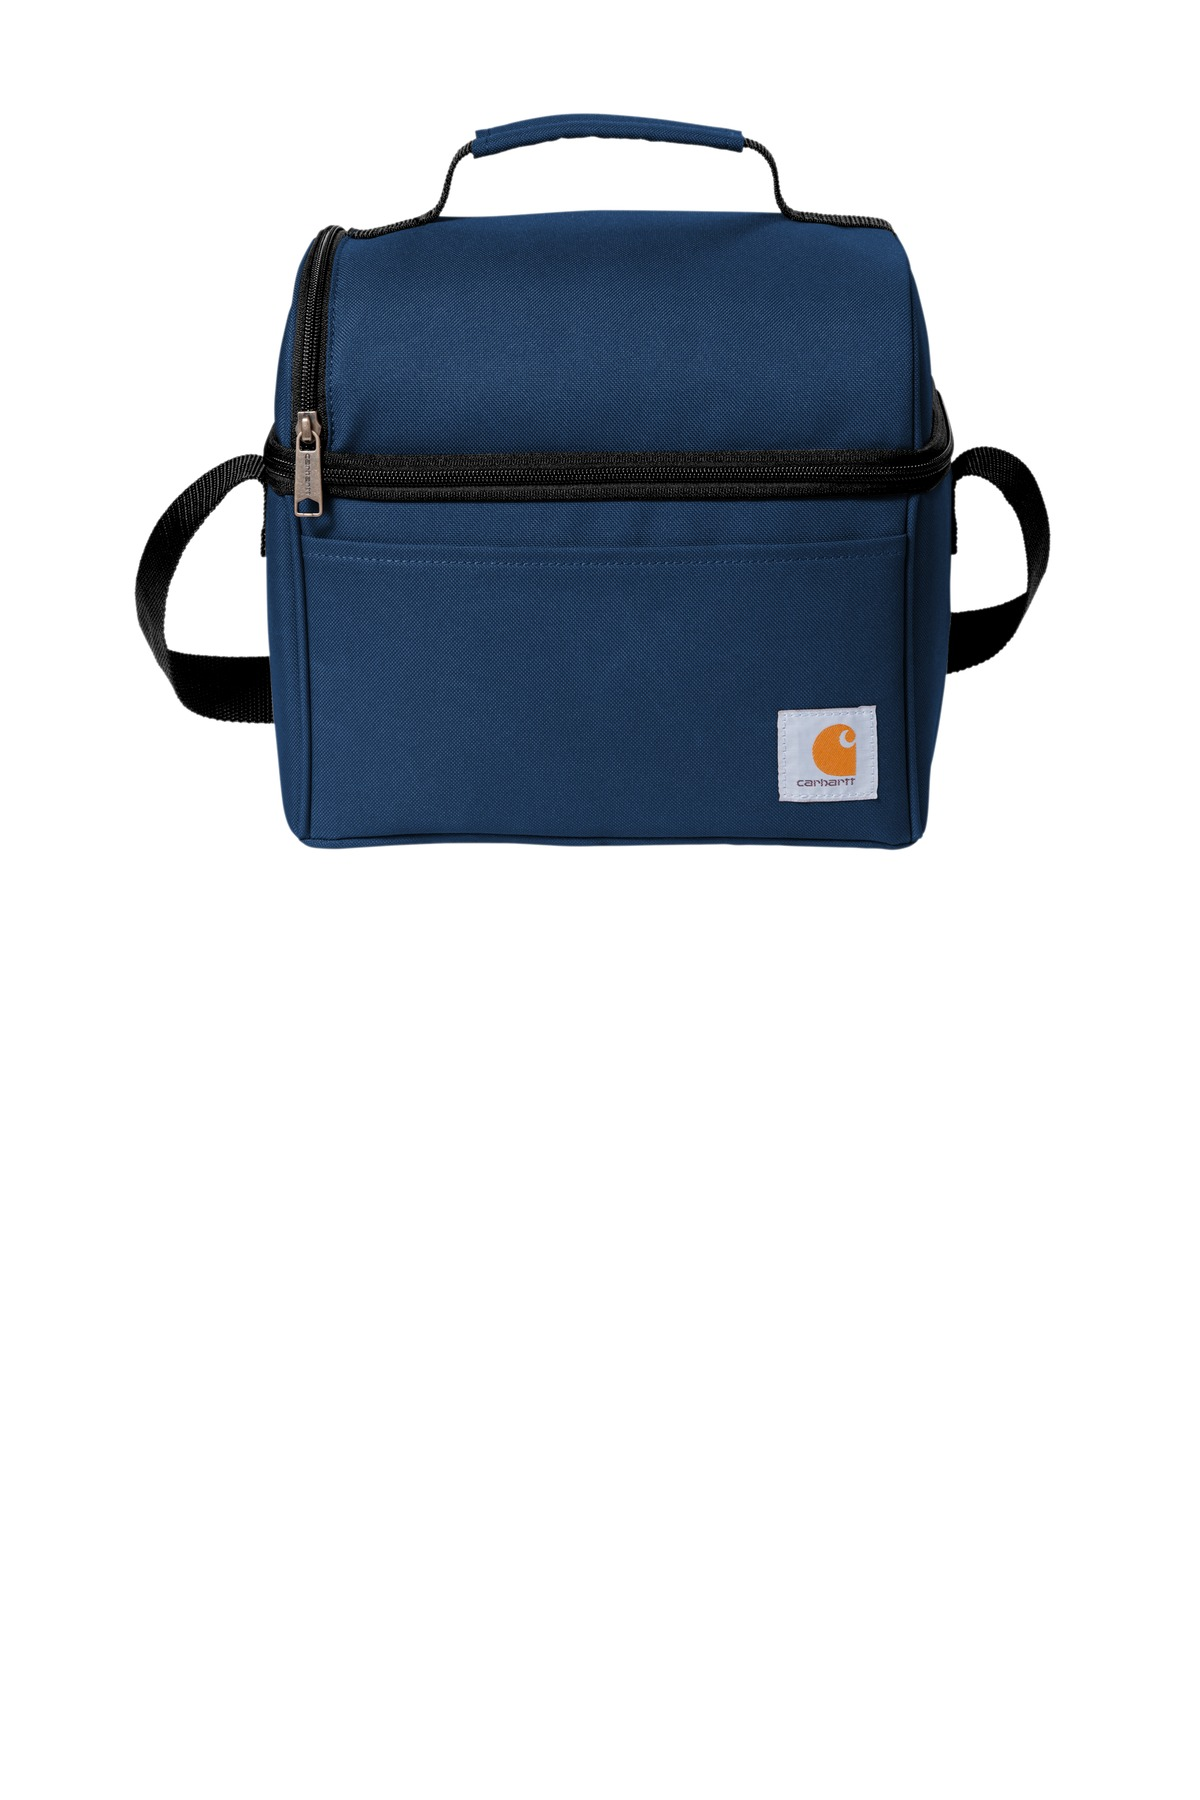 Carhartt ®   Lunch 6-Can Cooler. CT89251601 - Navy